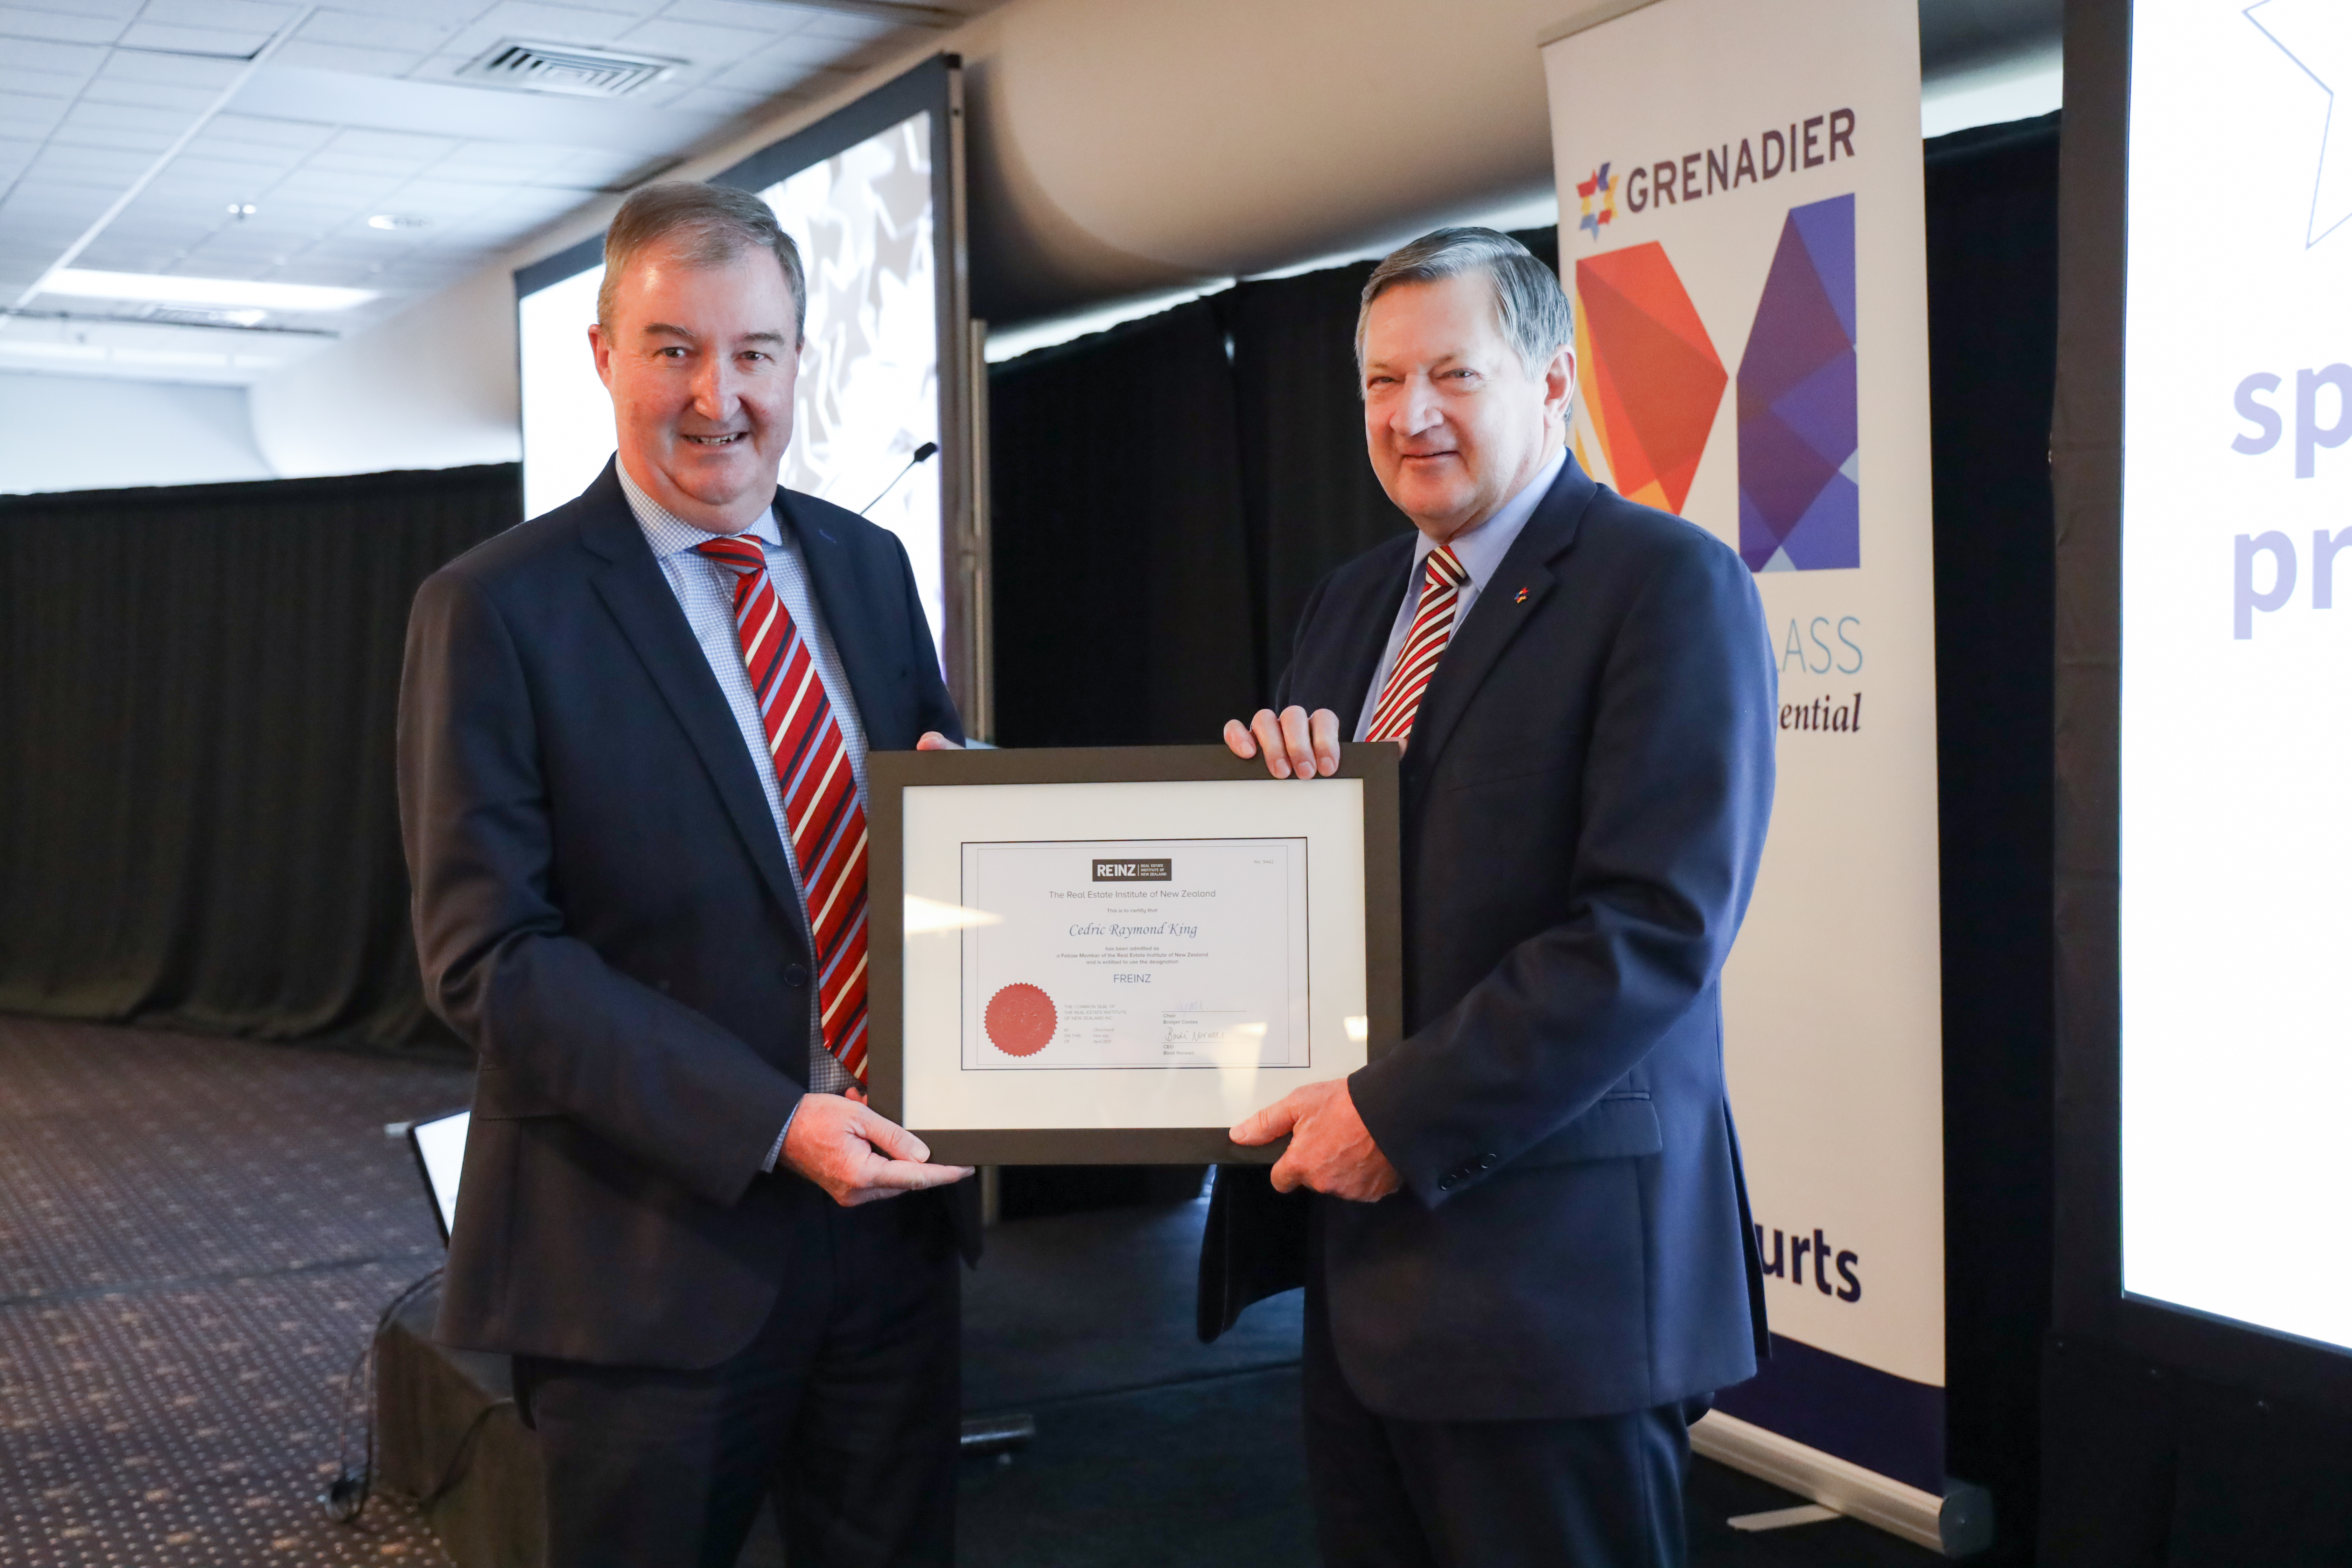 Harcourts Grenadier Manager honoured with REINZ fellowship